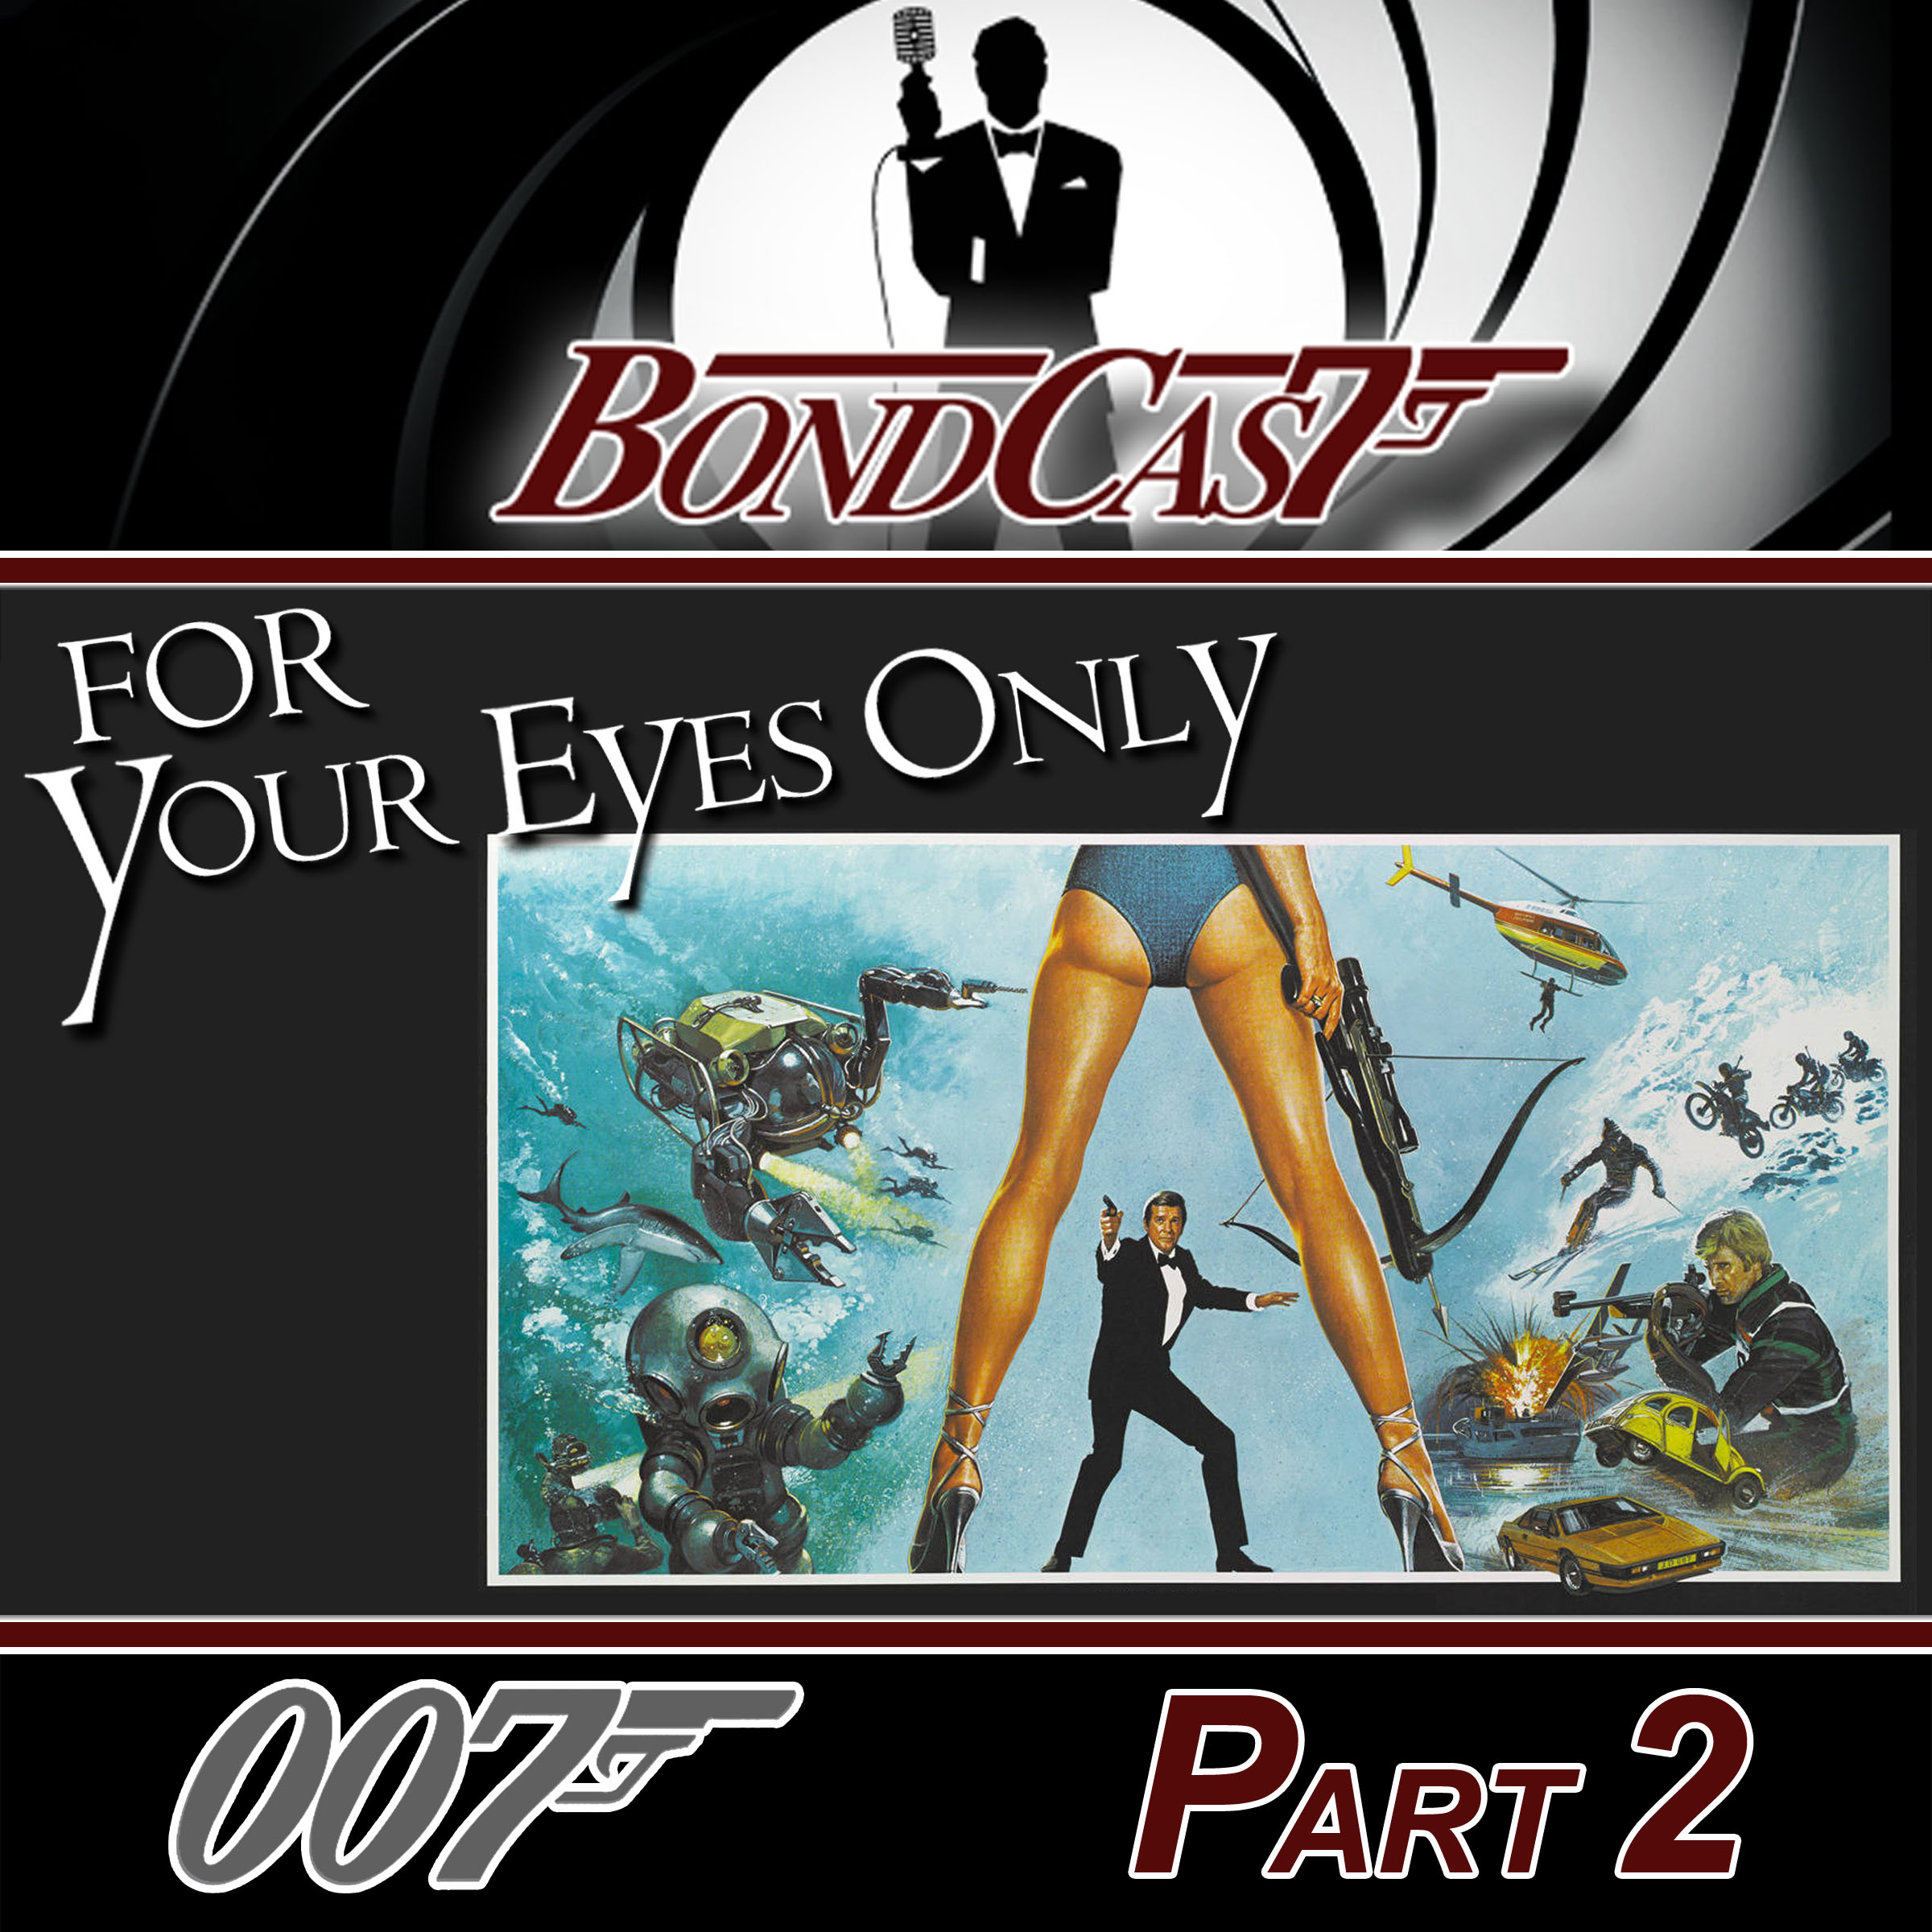 Bondcast - For Your Eyes Only - Part 2.jpg